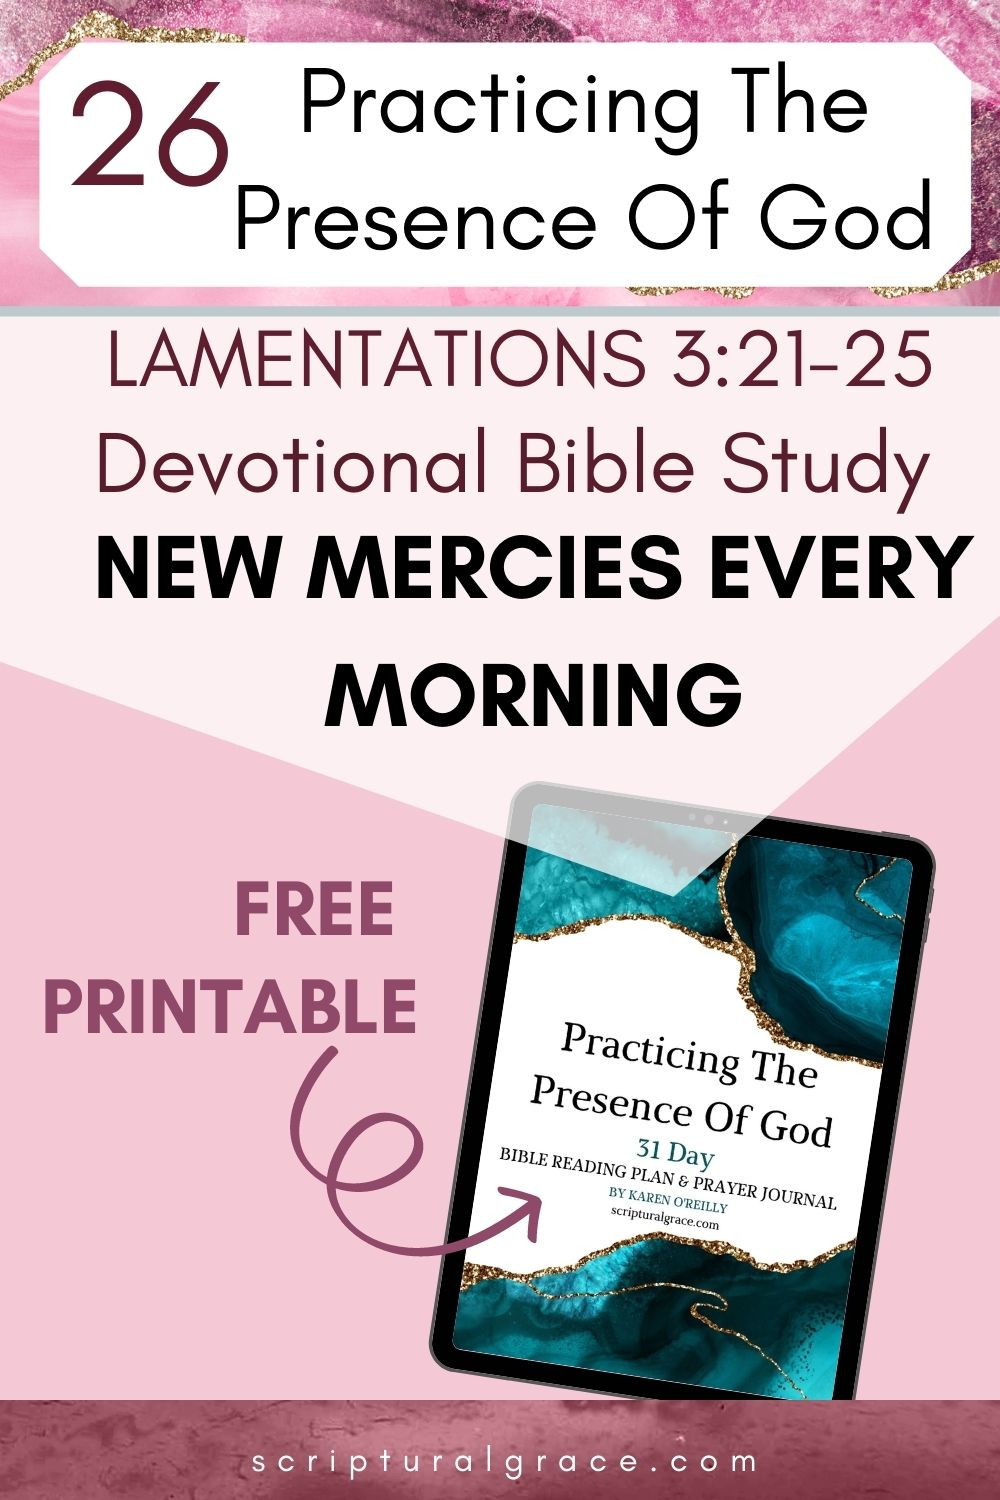 New mercies every morning Lamentations 3:21-25 devotional bible study for women and free printable prayer journal